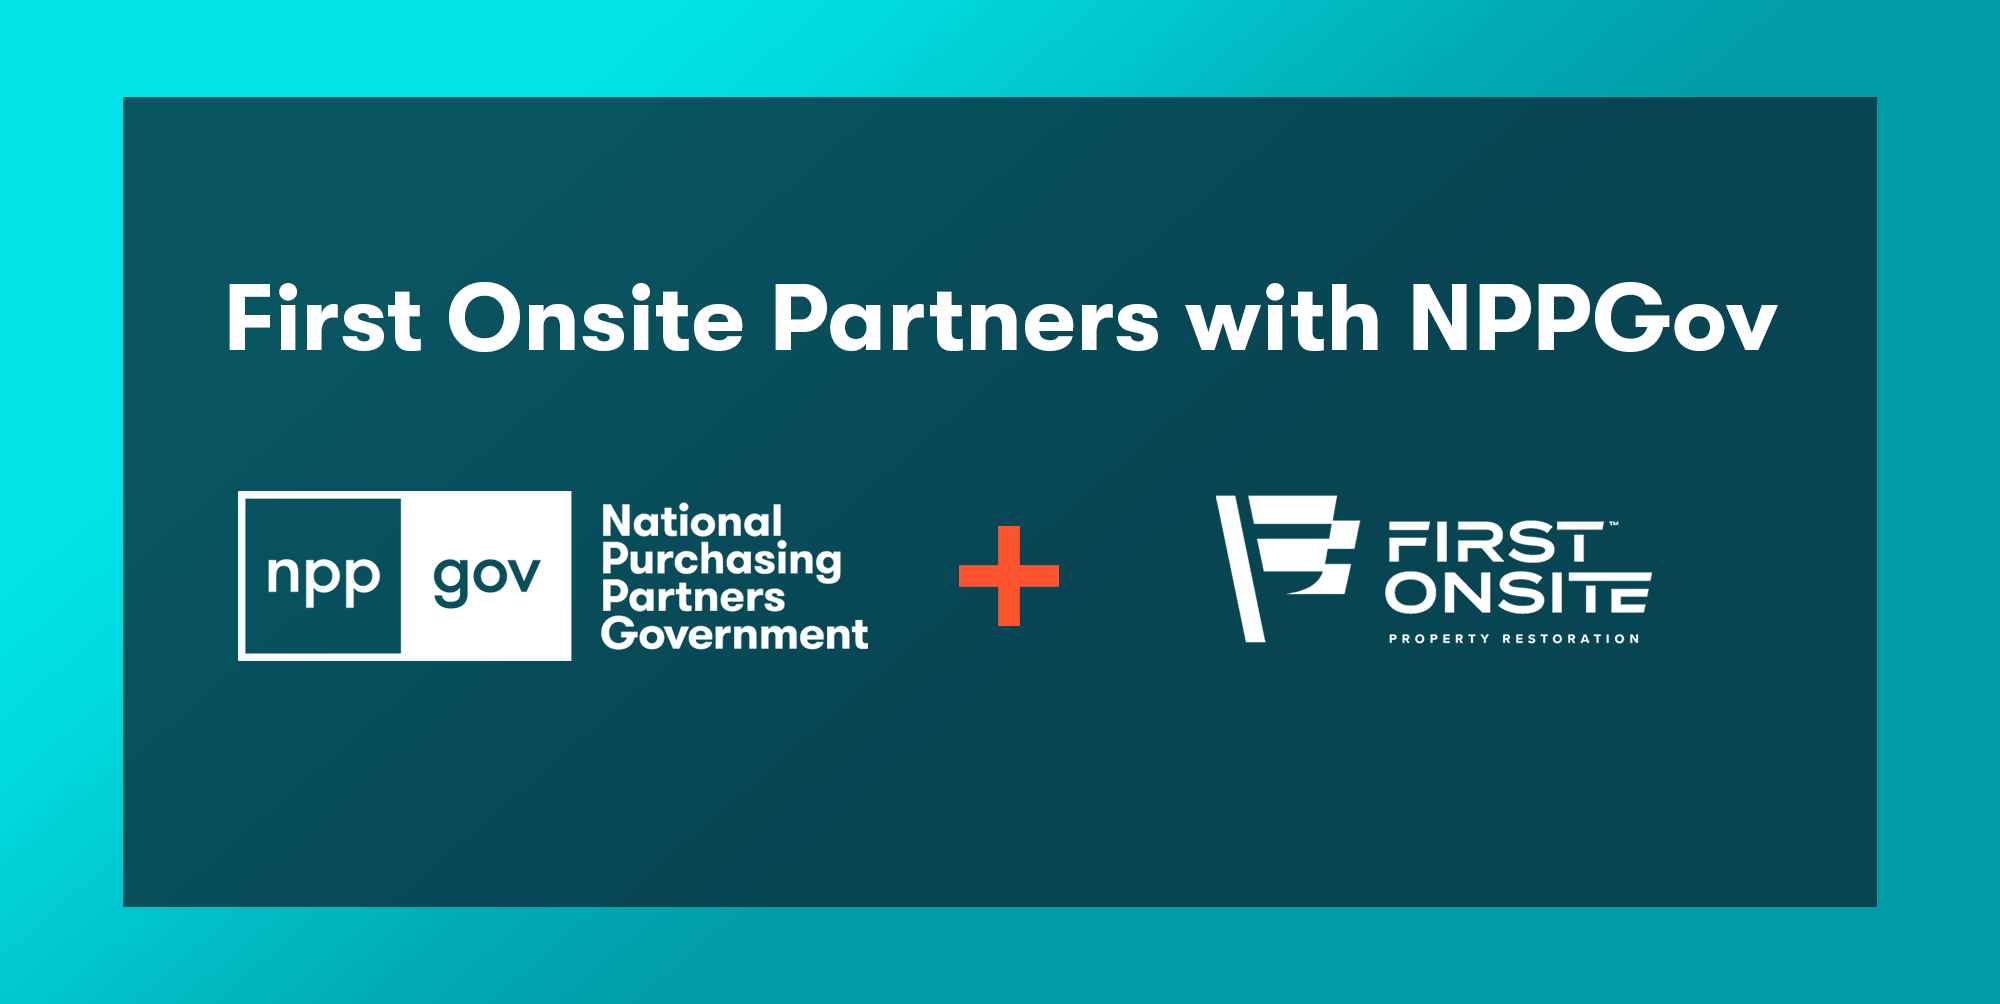 First Onsite Partners with NPPGov